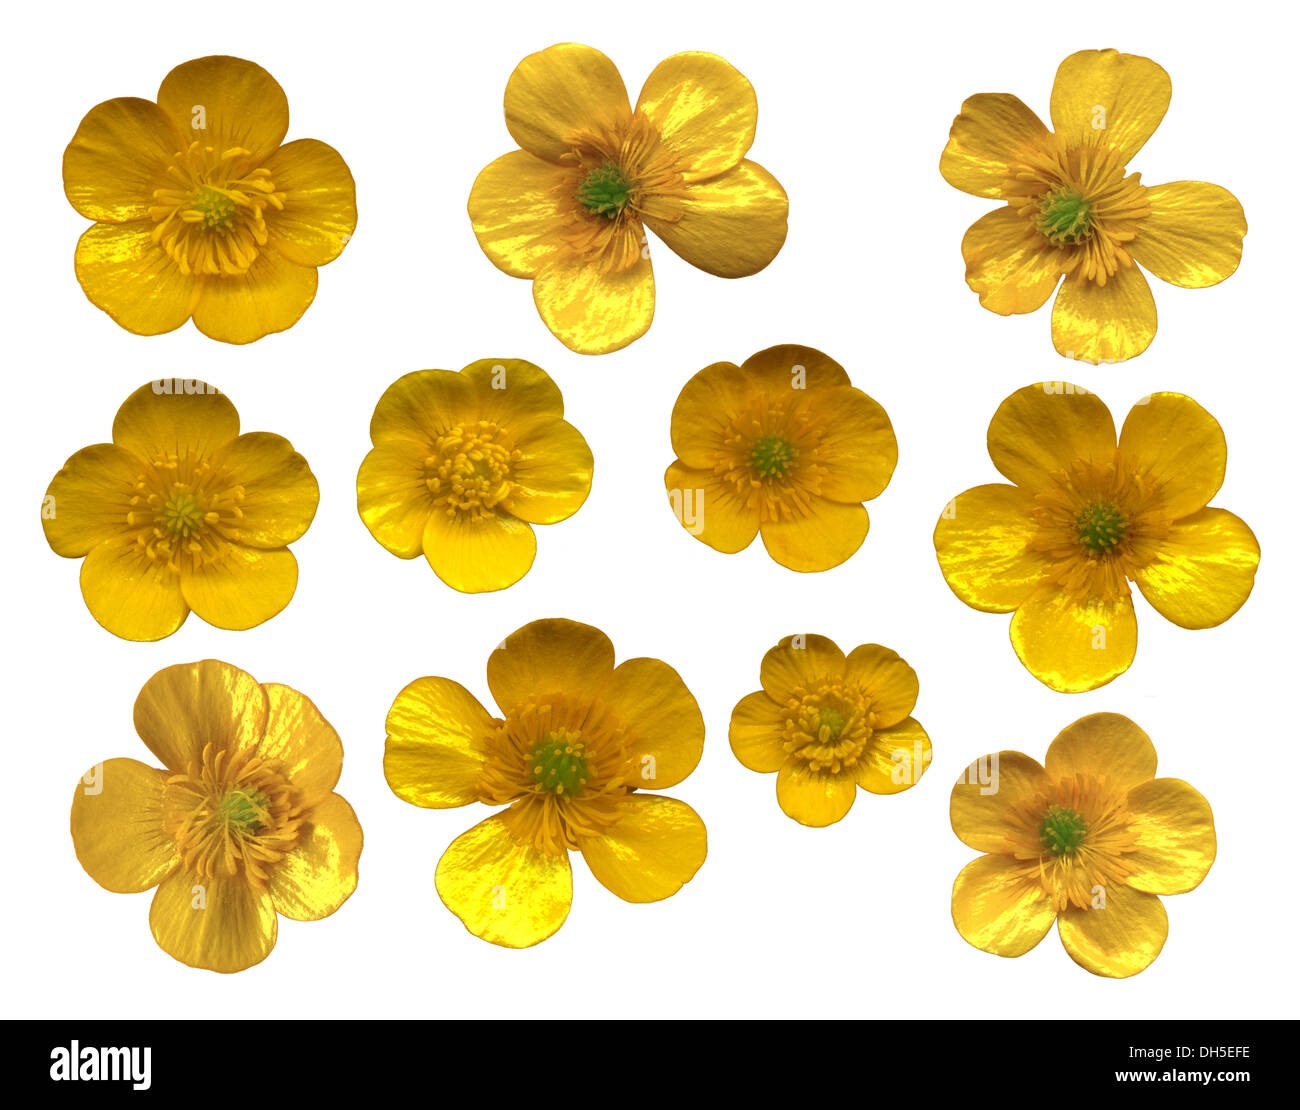 buttercups blossoms on white background - Stock Image